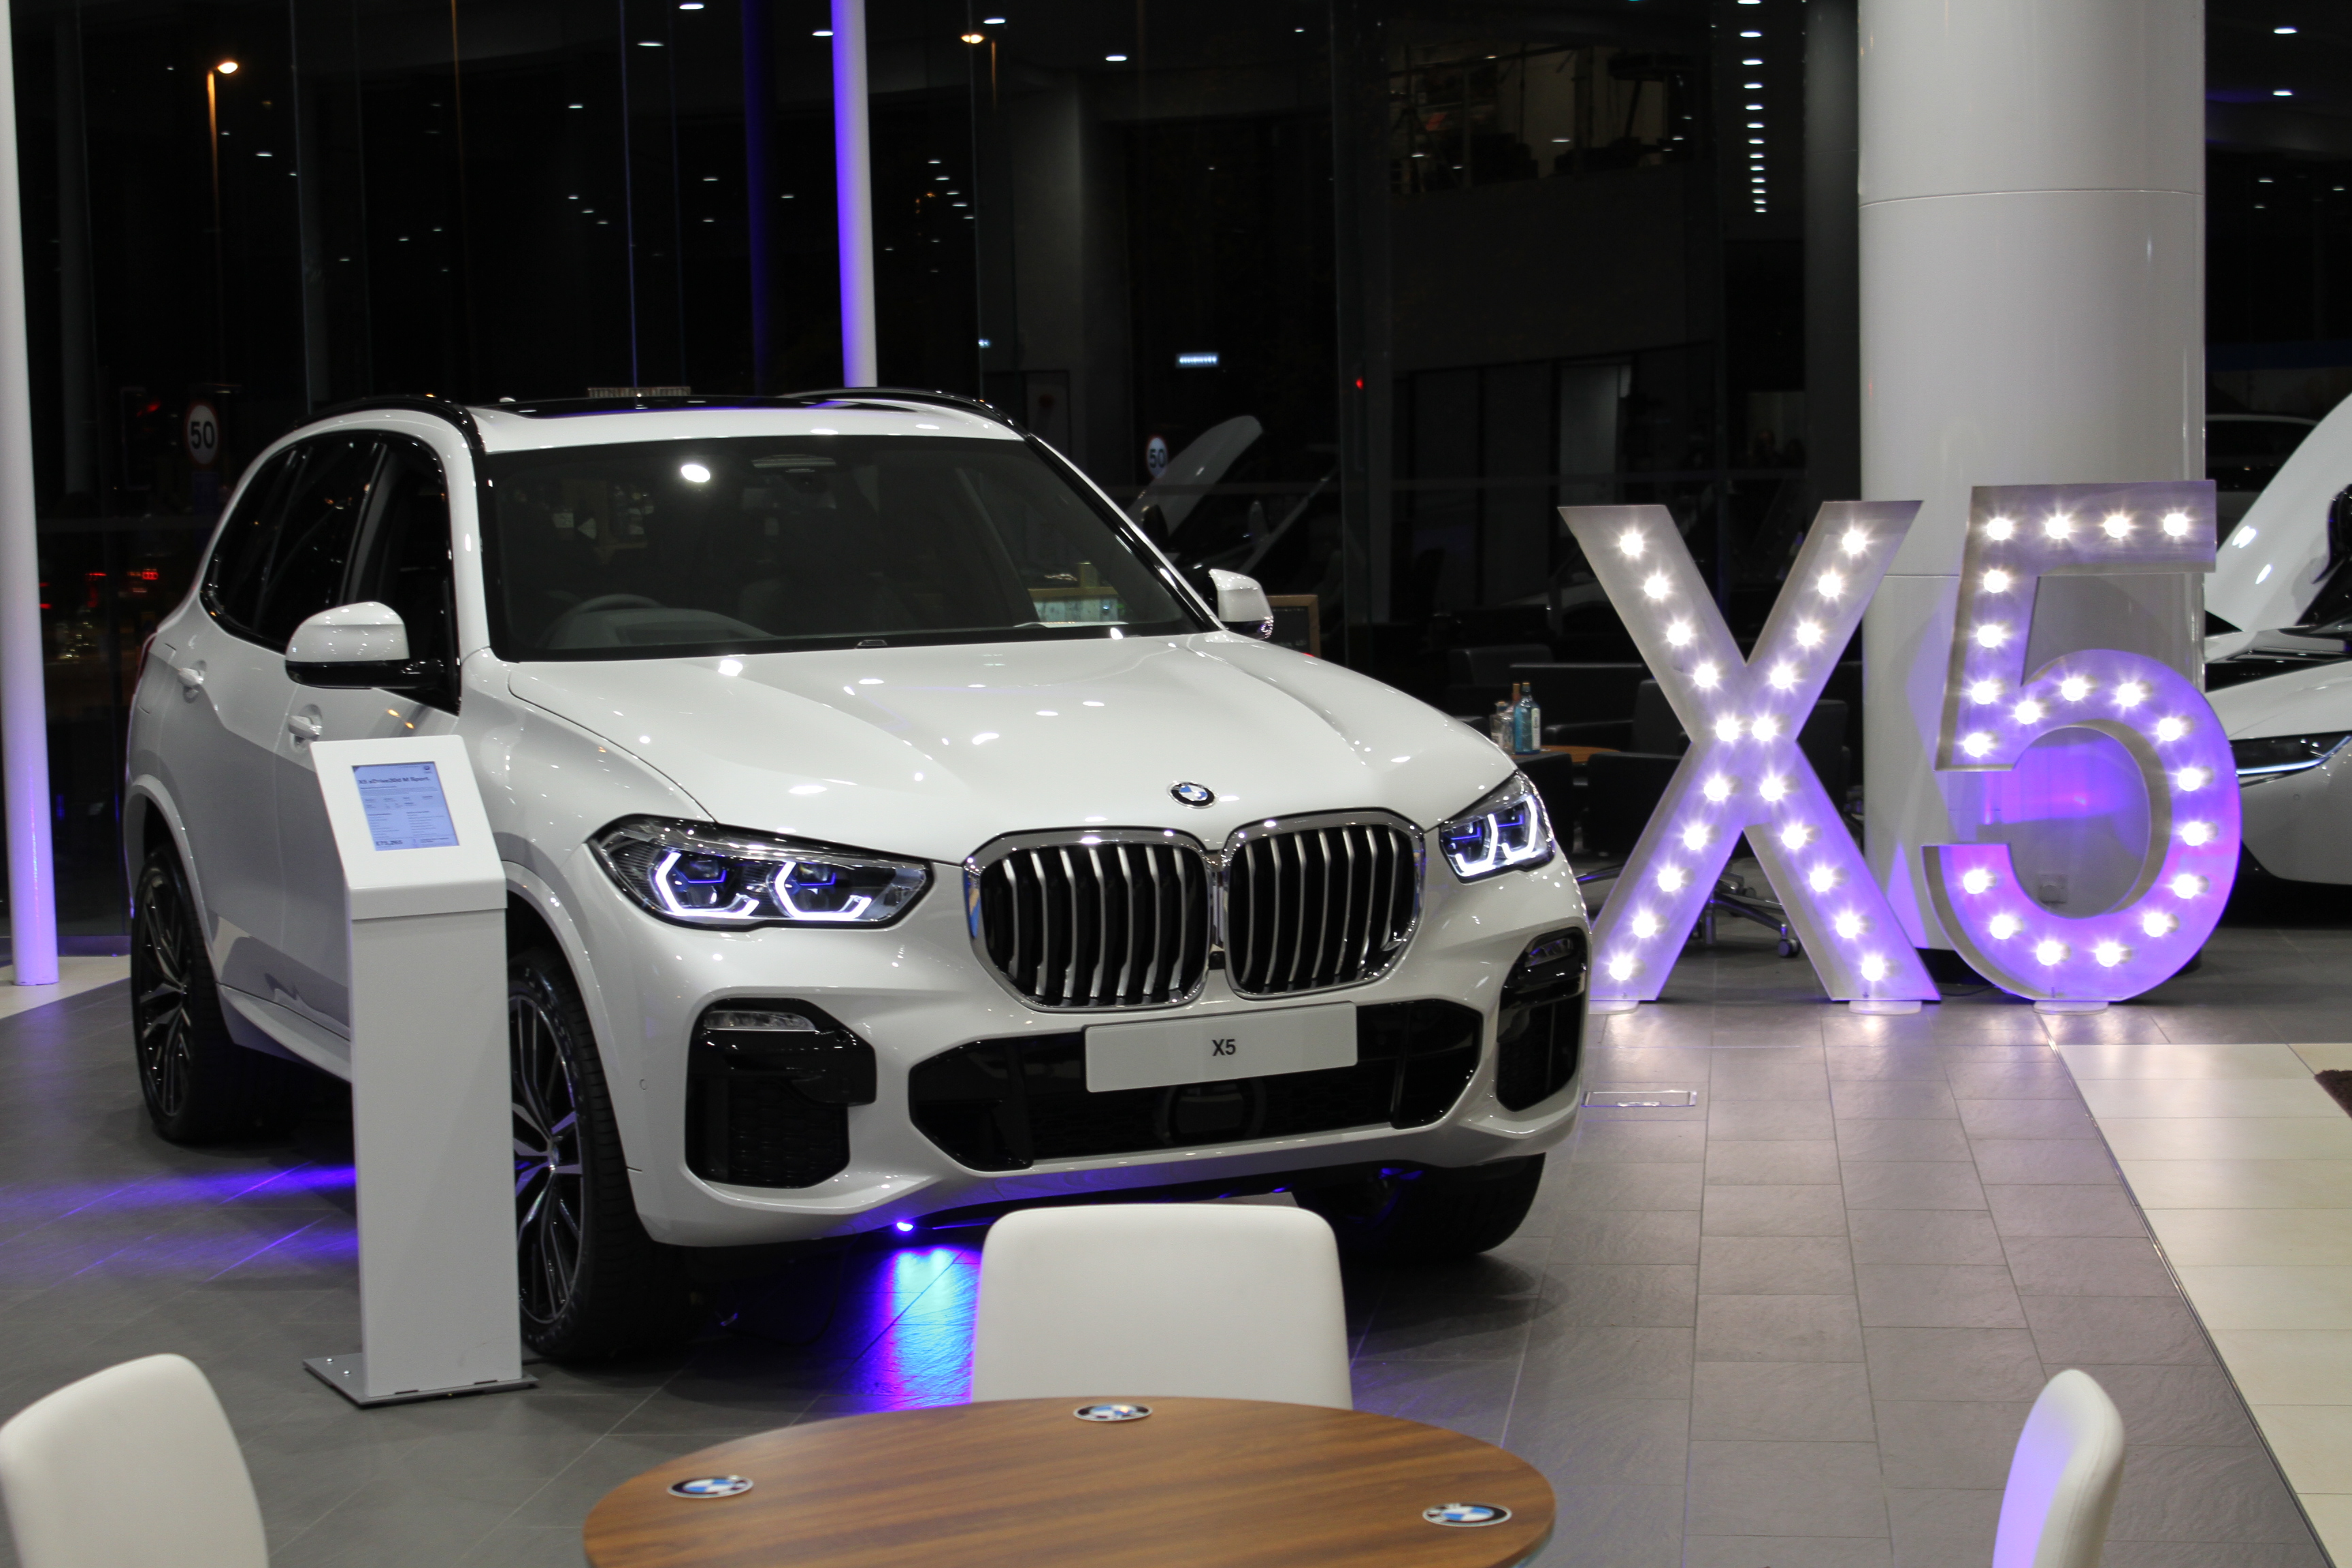 light up letter hire for BMW launch